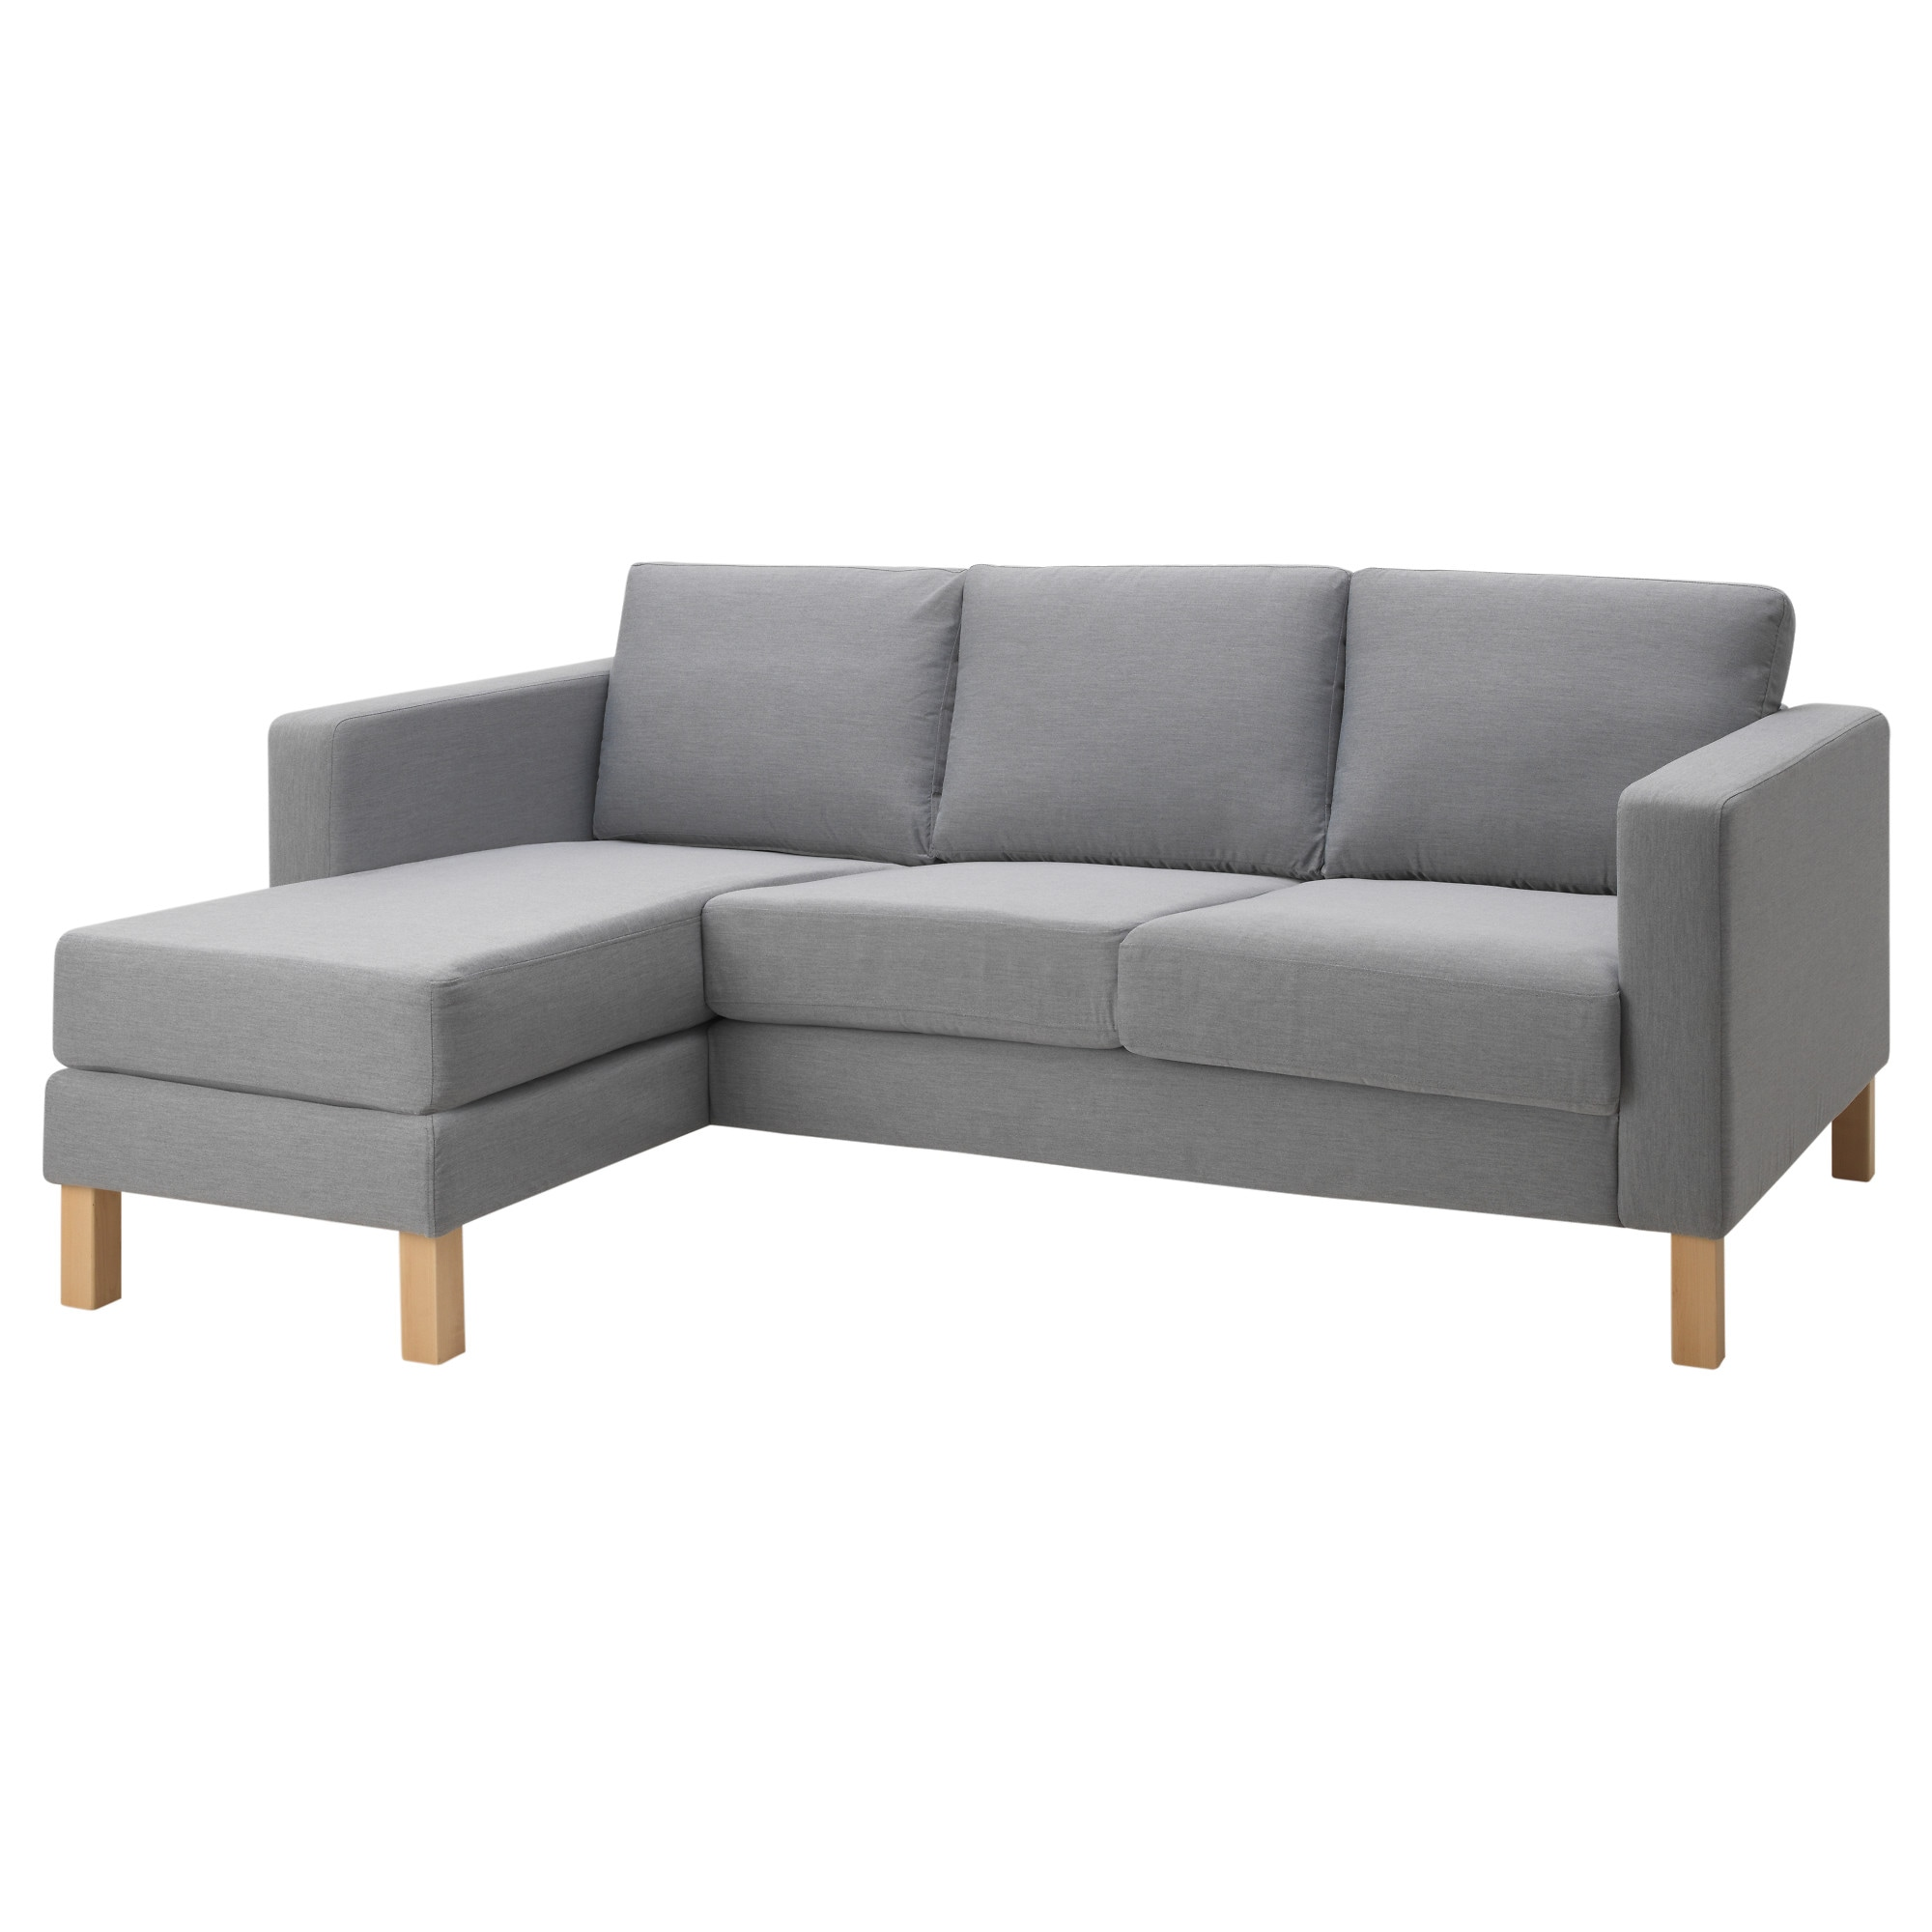 Ikea chaise sofa chaise lounge sofa ikea ikea chaise for Chaise design ikea